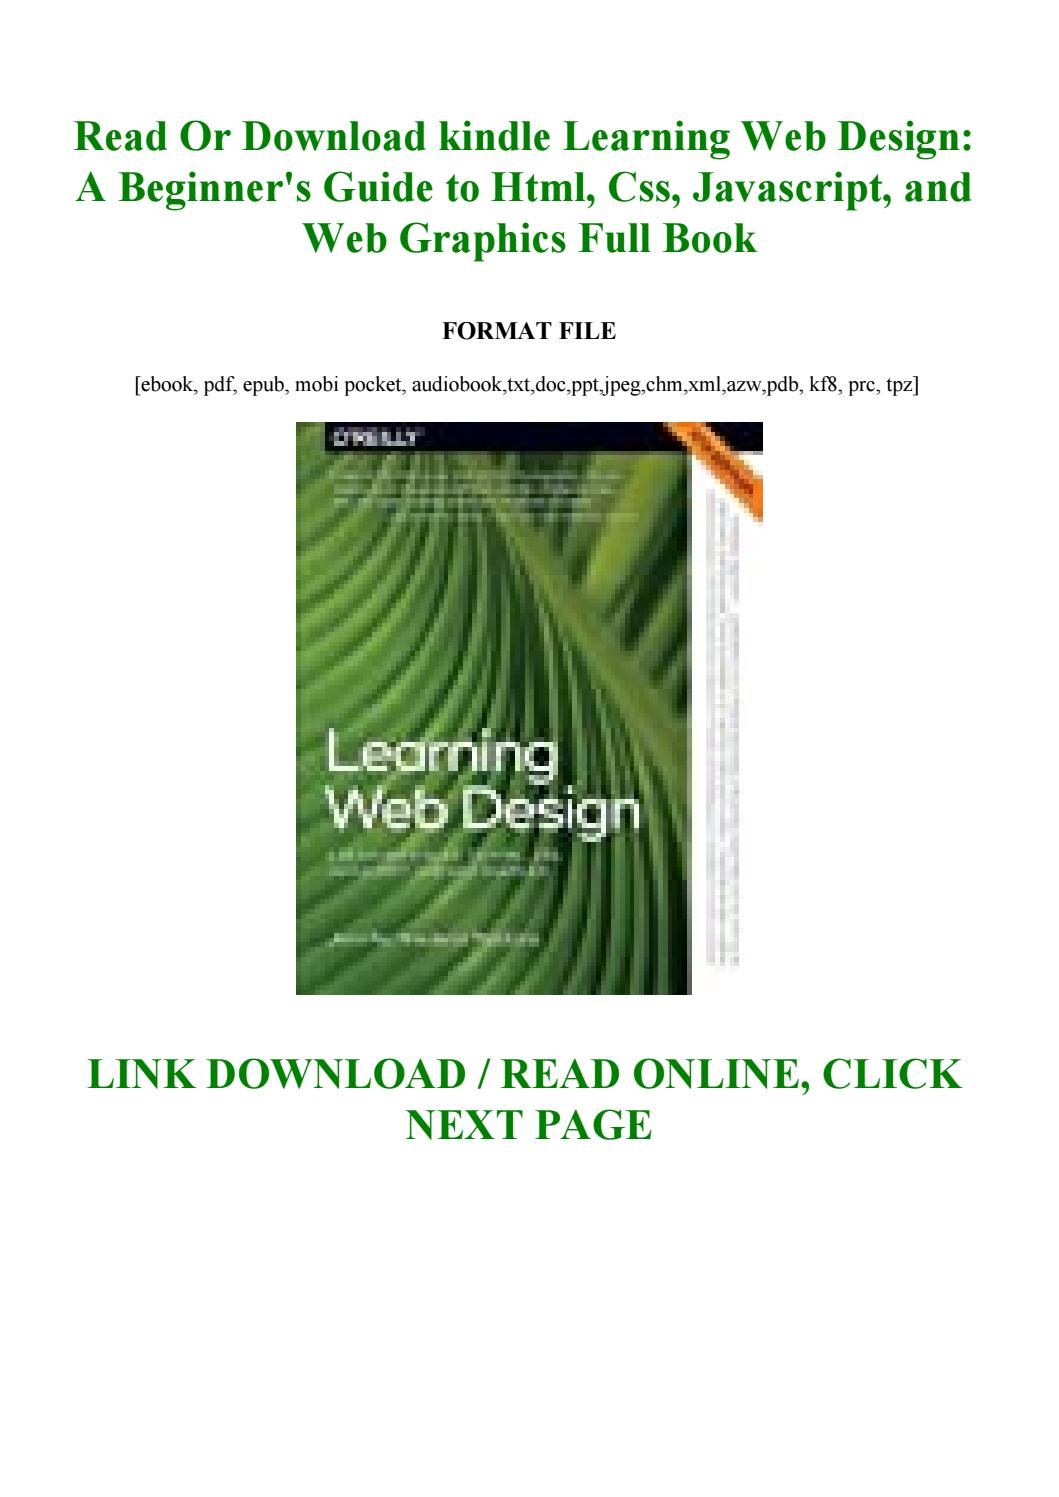 Kindle Learning Web Design A Beginner S Guide To Html Css Javascript And Web Graphics By Ertesdgzxvc Issuu